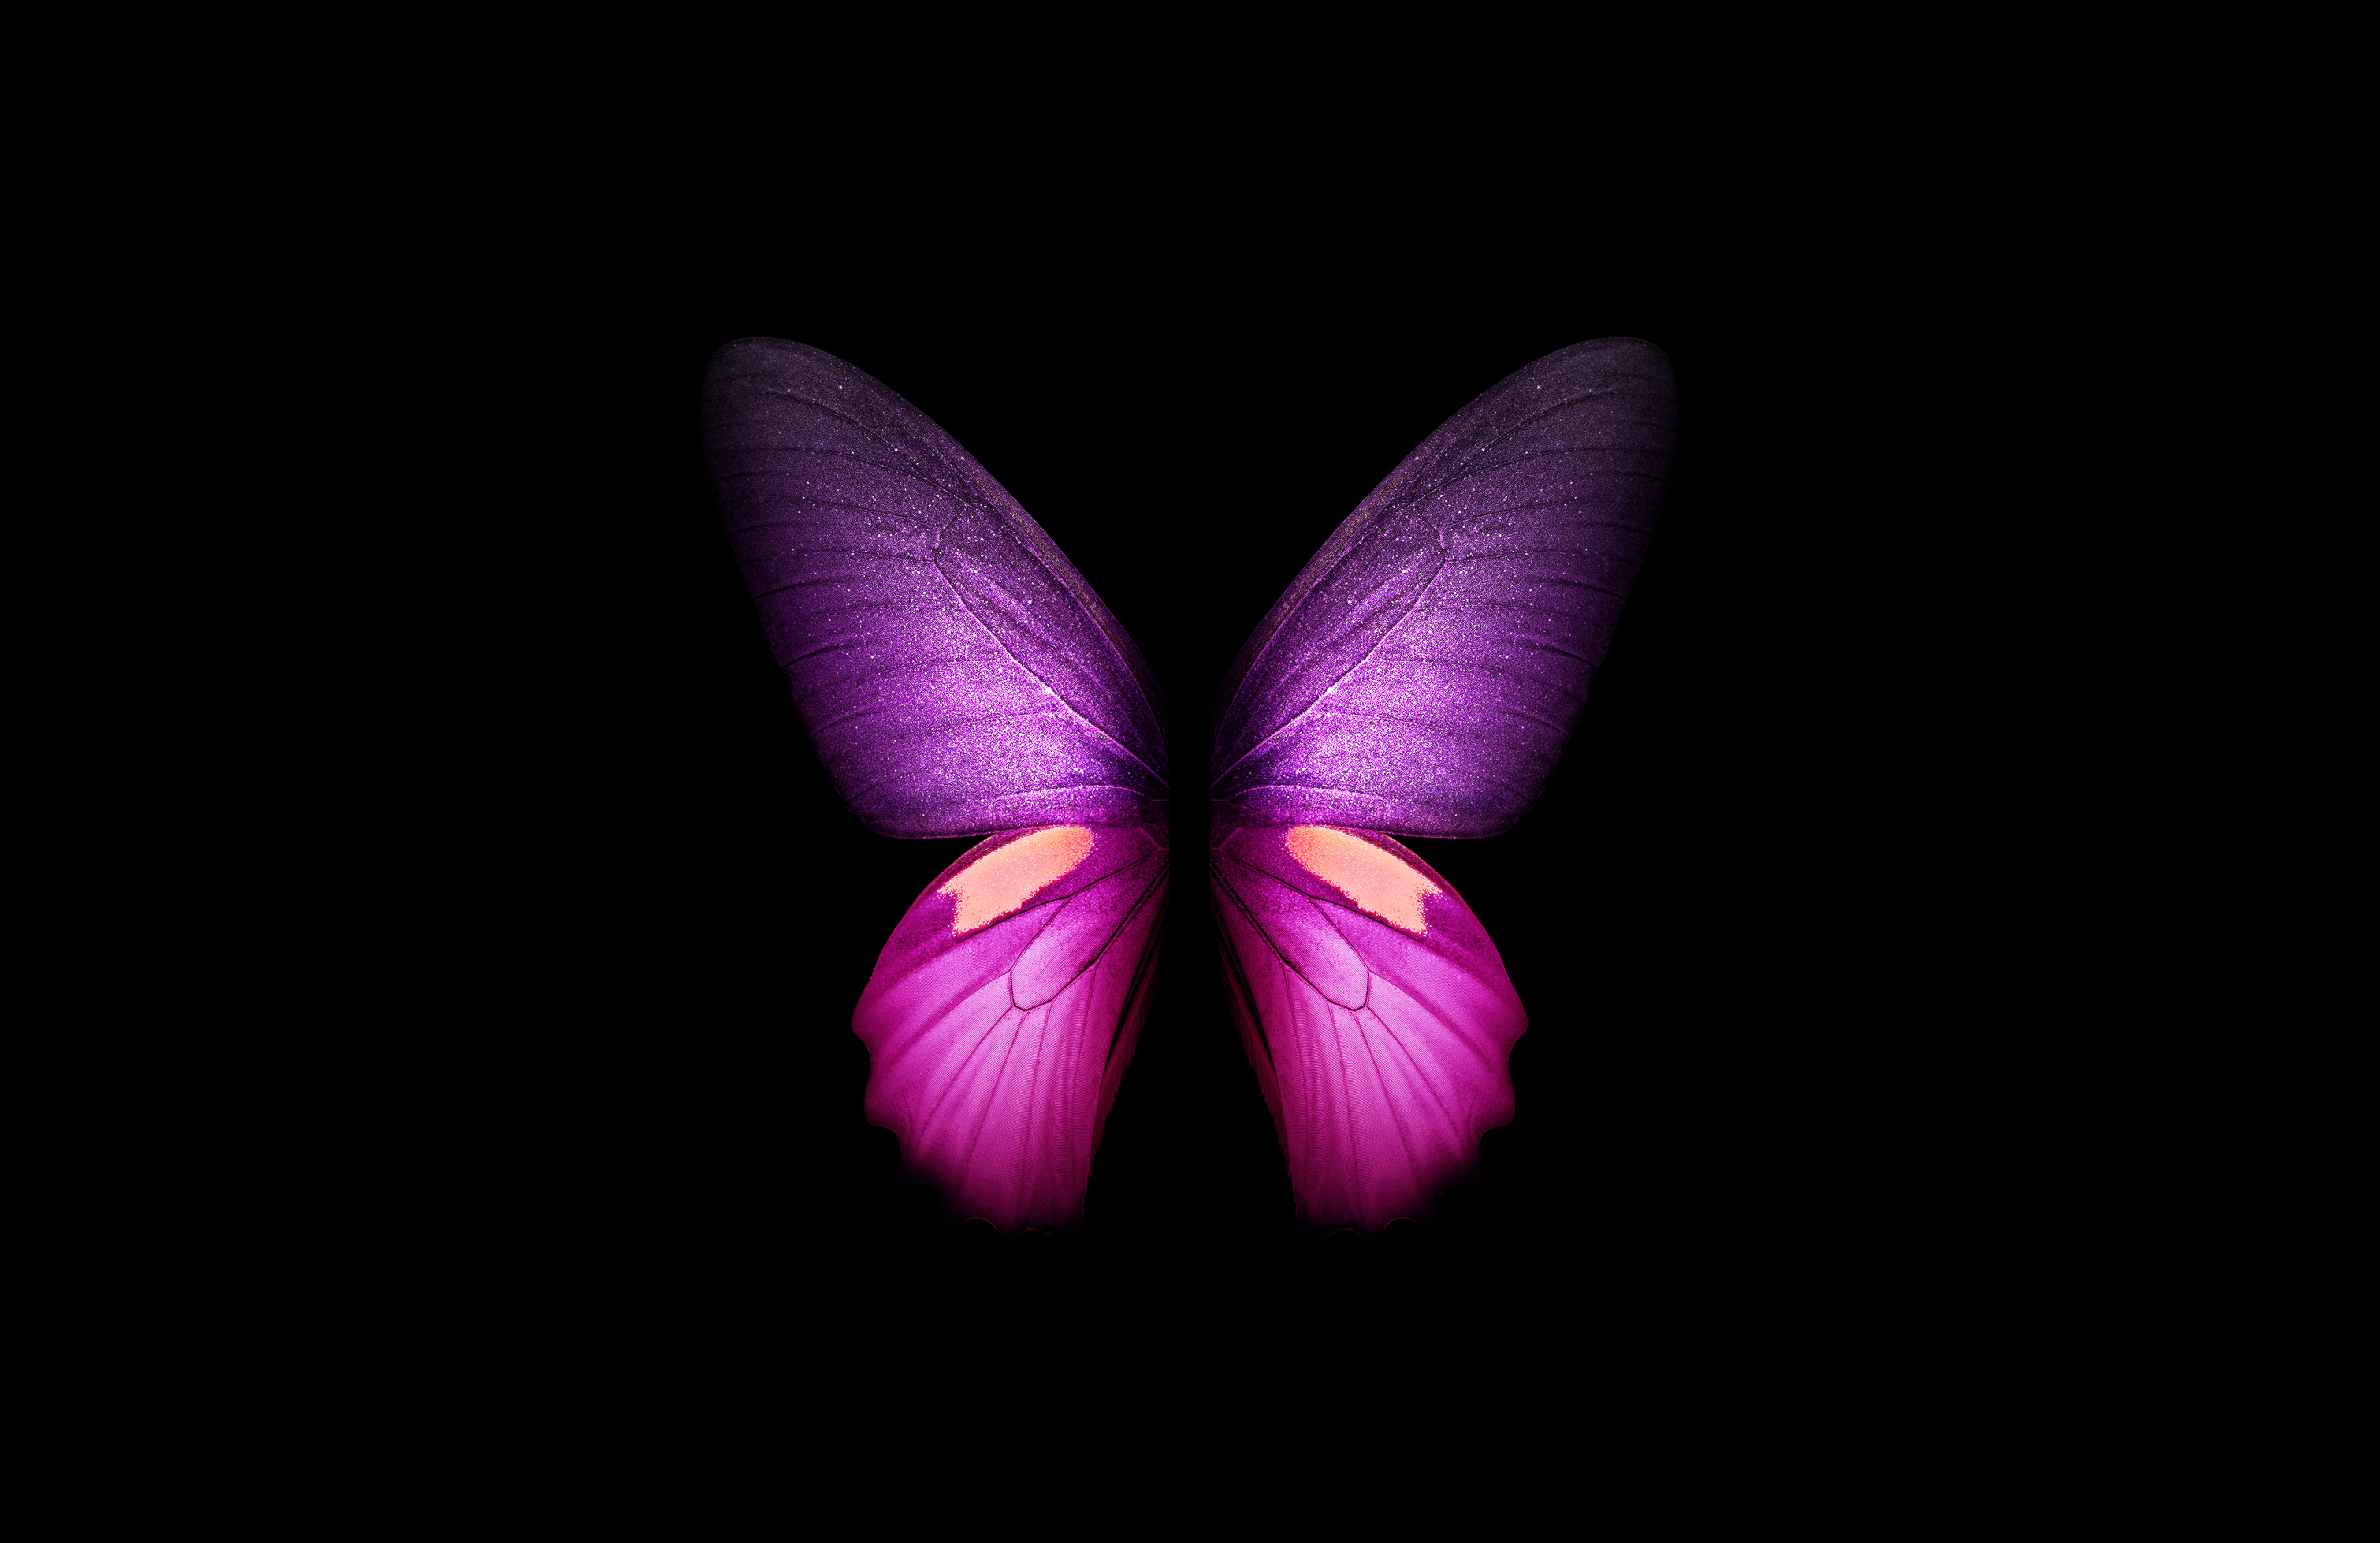 Purple Butterfly 4k Wallpaper Wings Black Background Samsung Galaxy Fold Amoled Cgi Girly Stock Graphics Cgi 2361